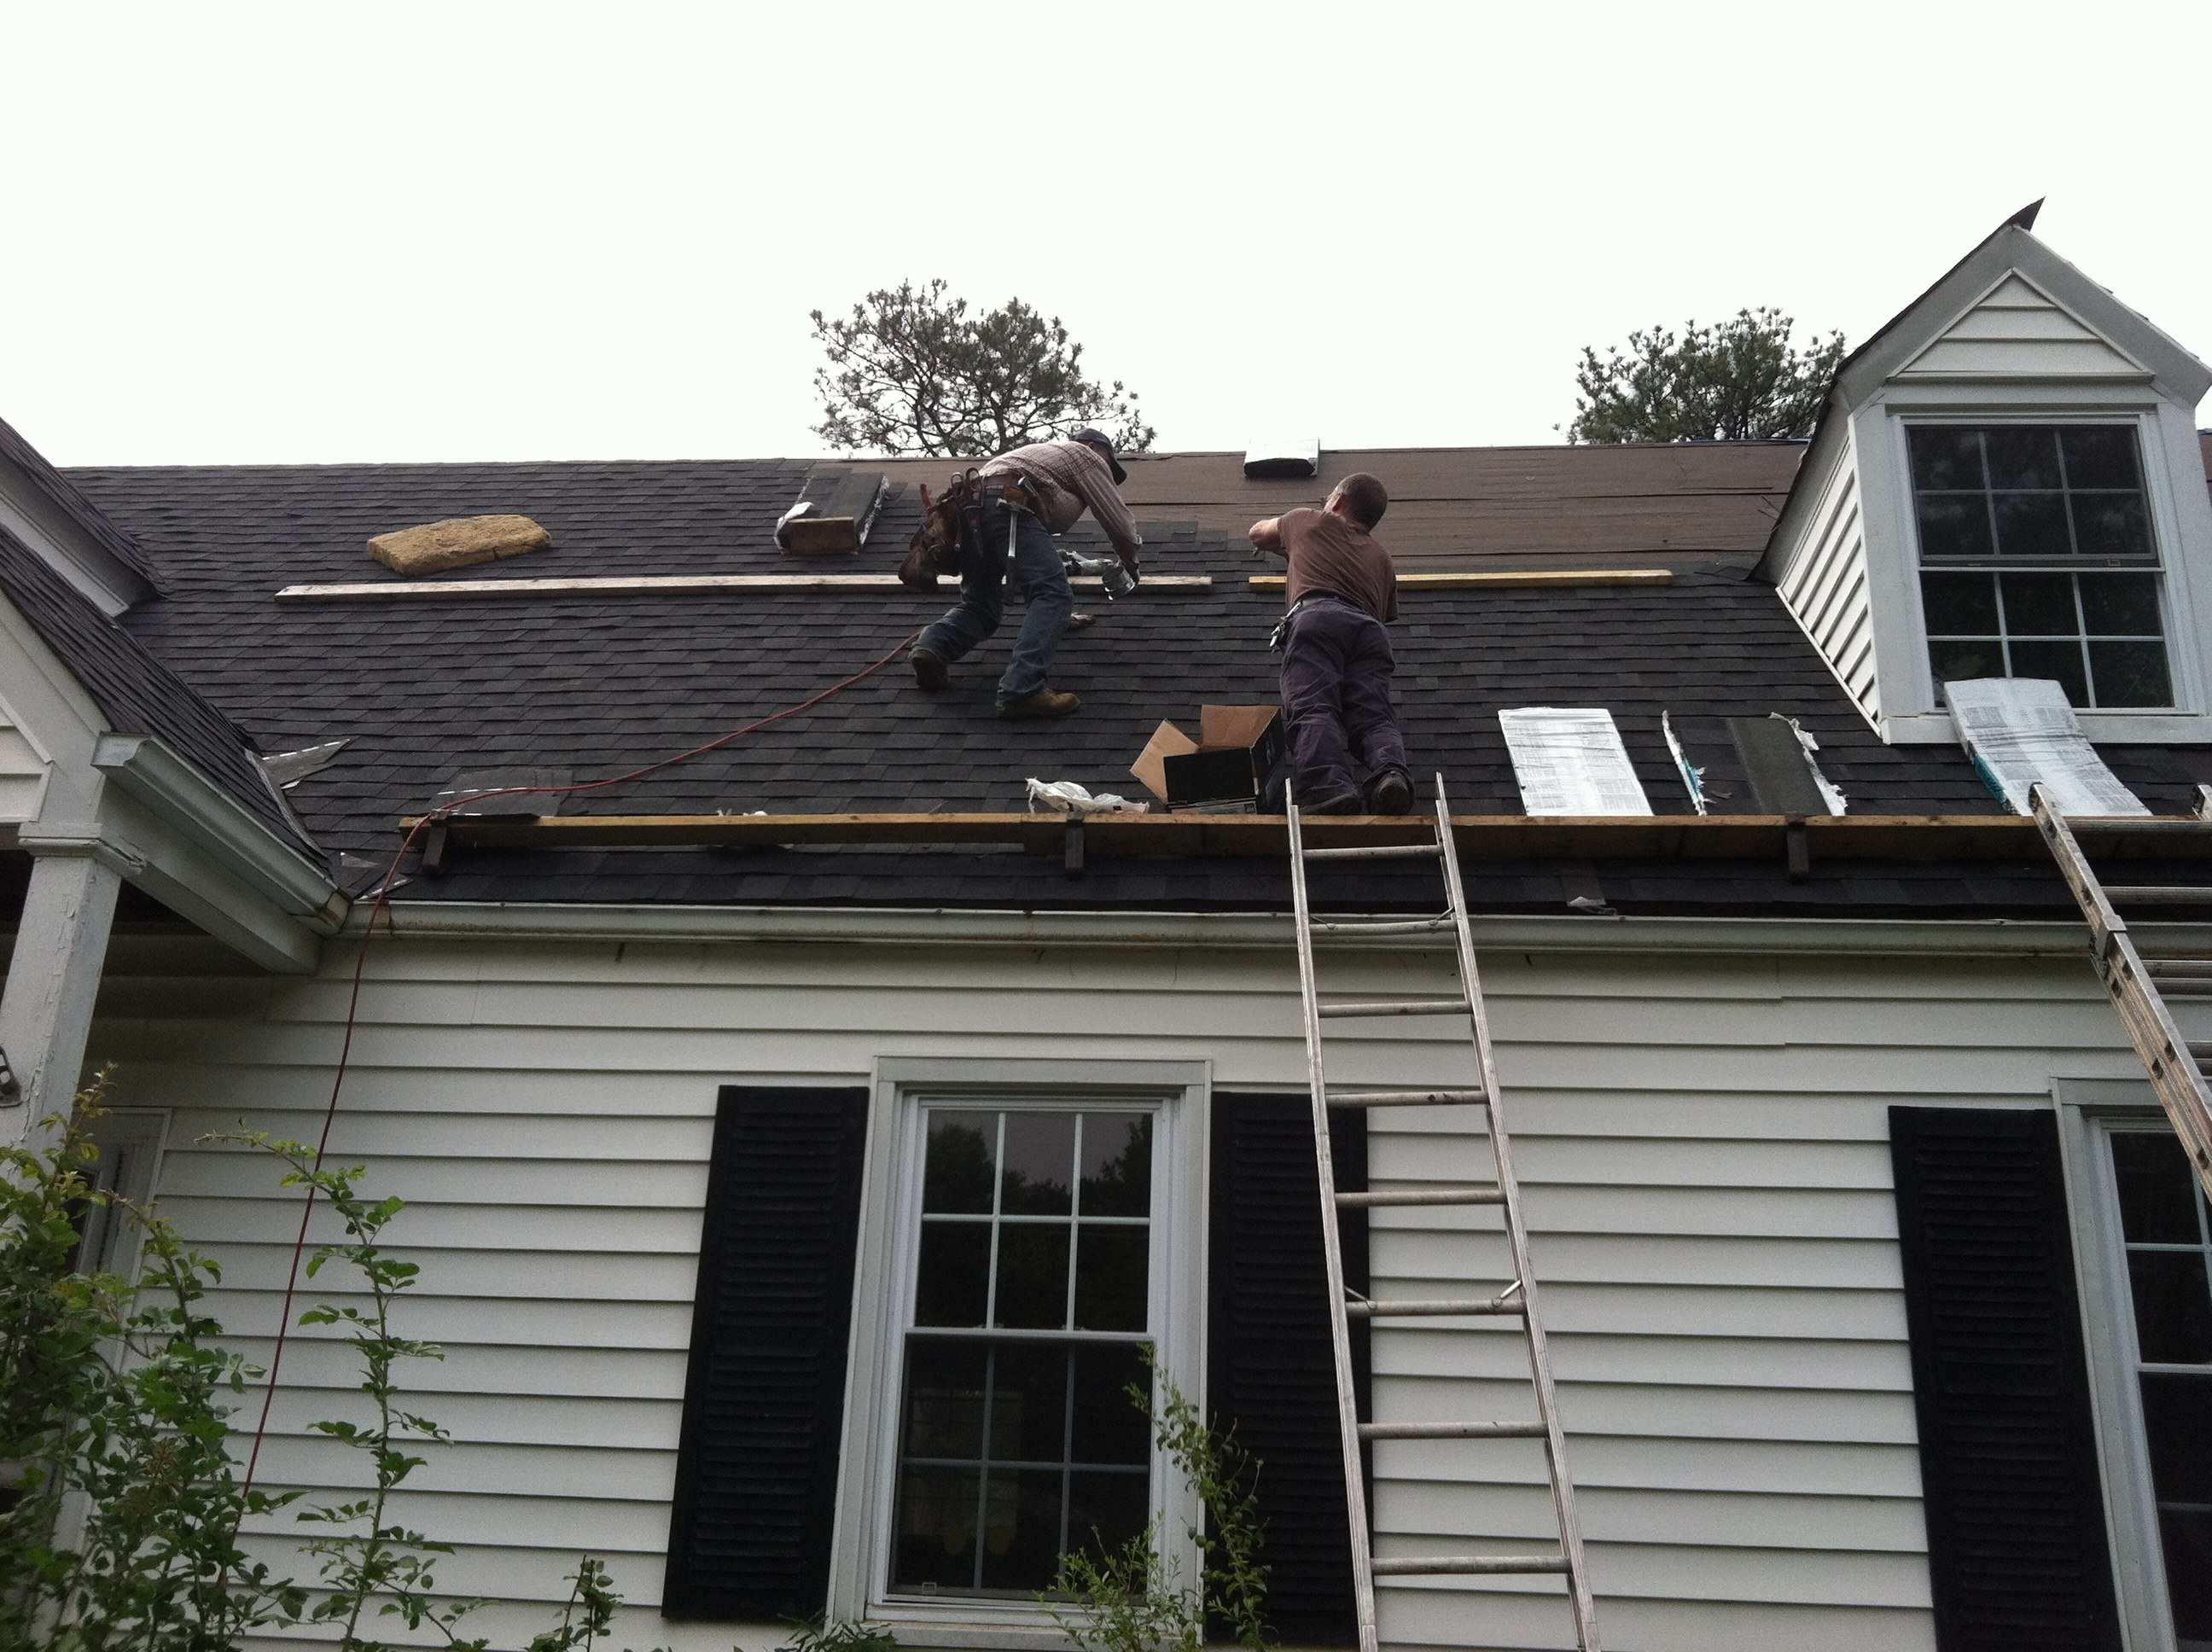 how to work on a steep roof safely